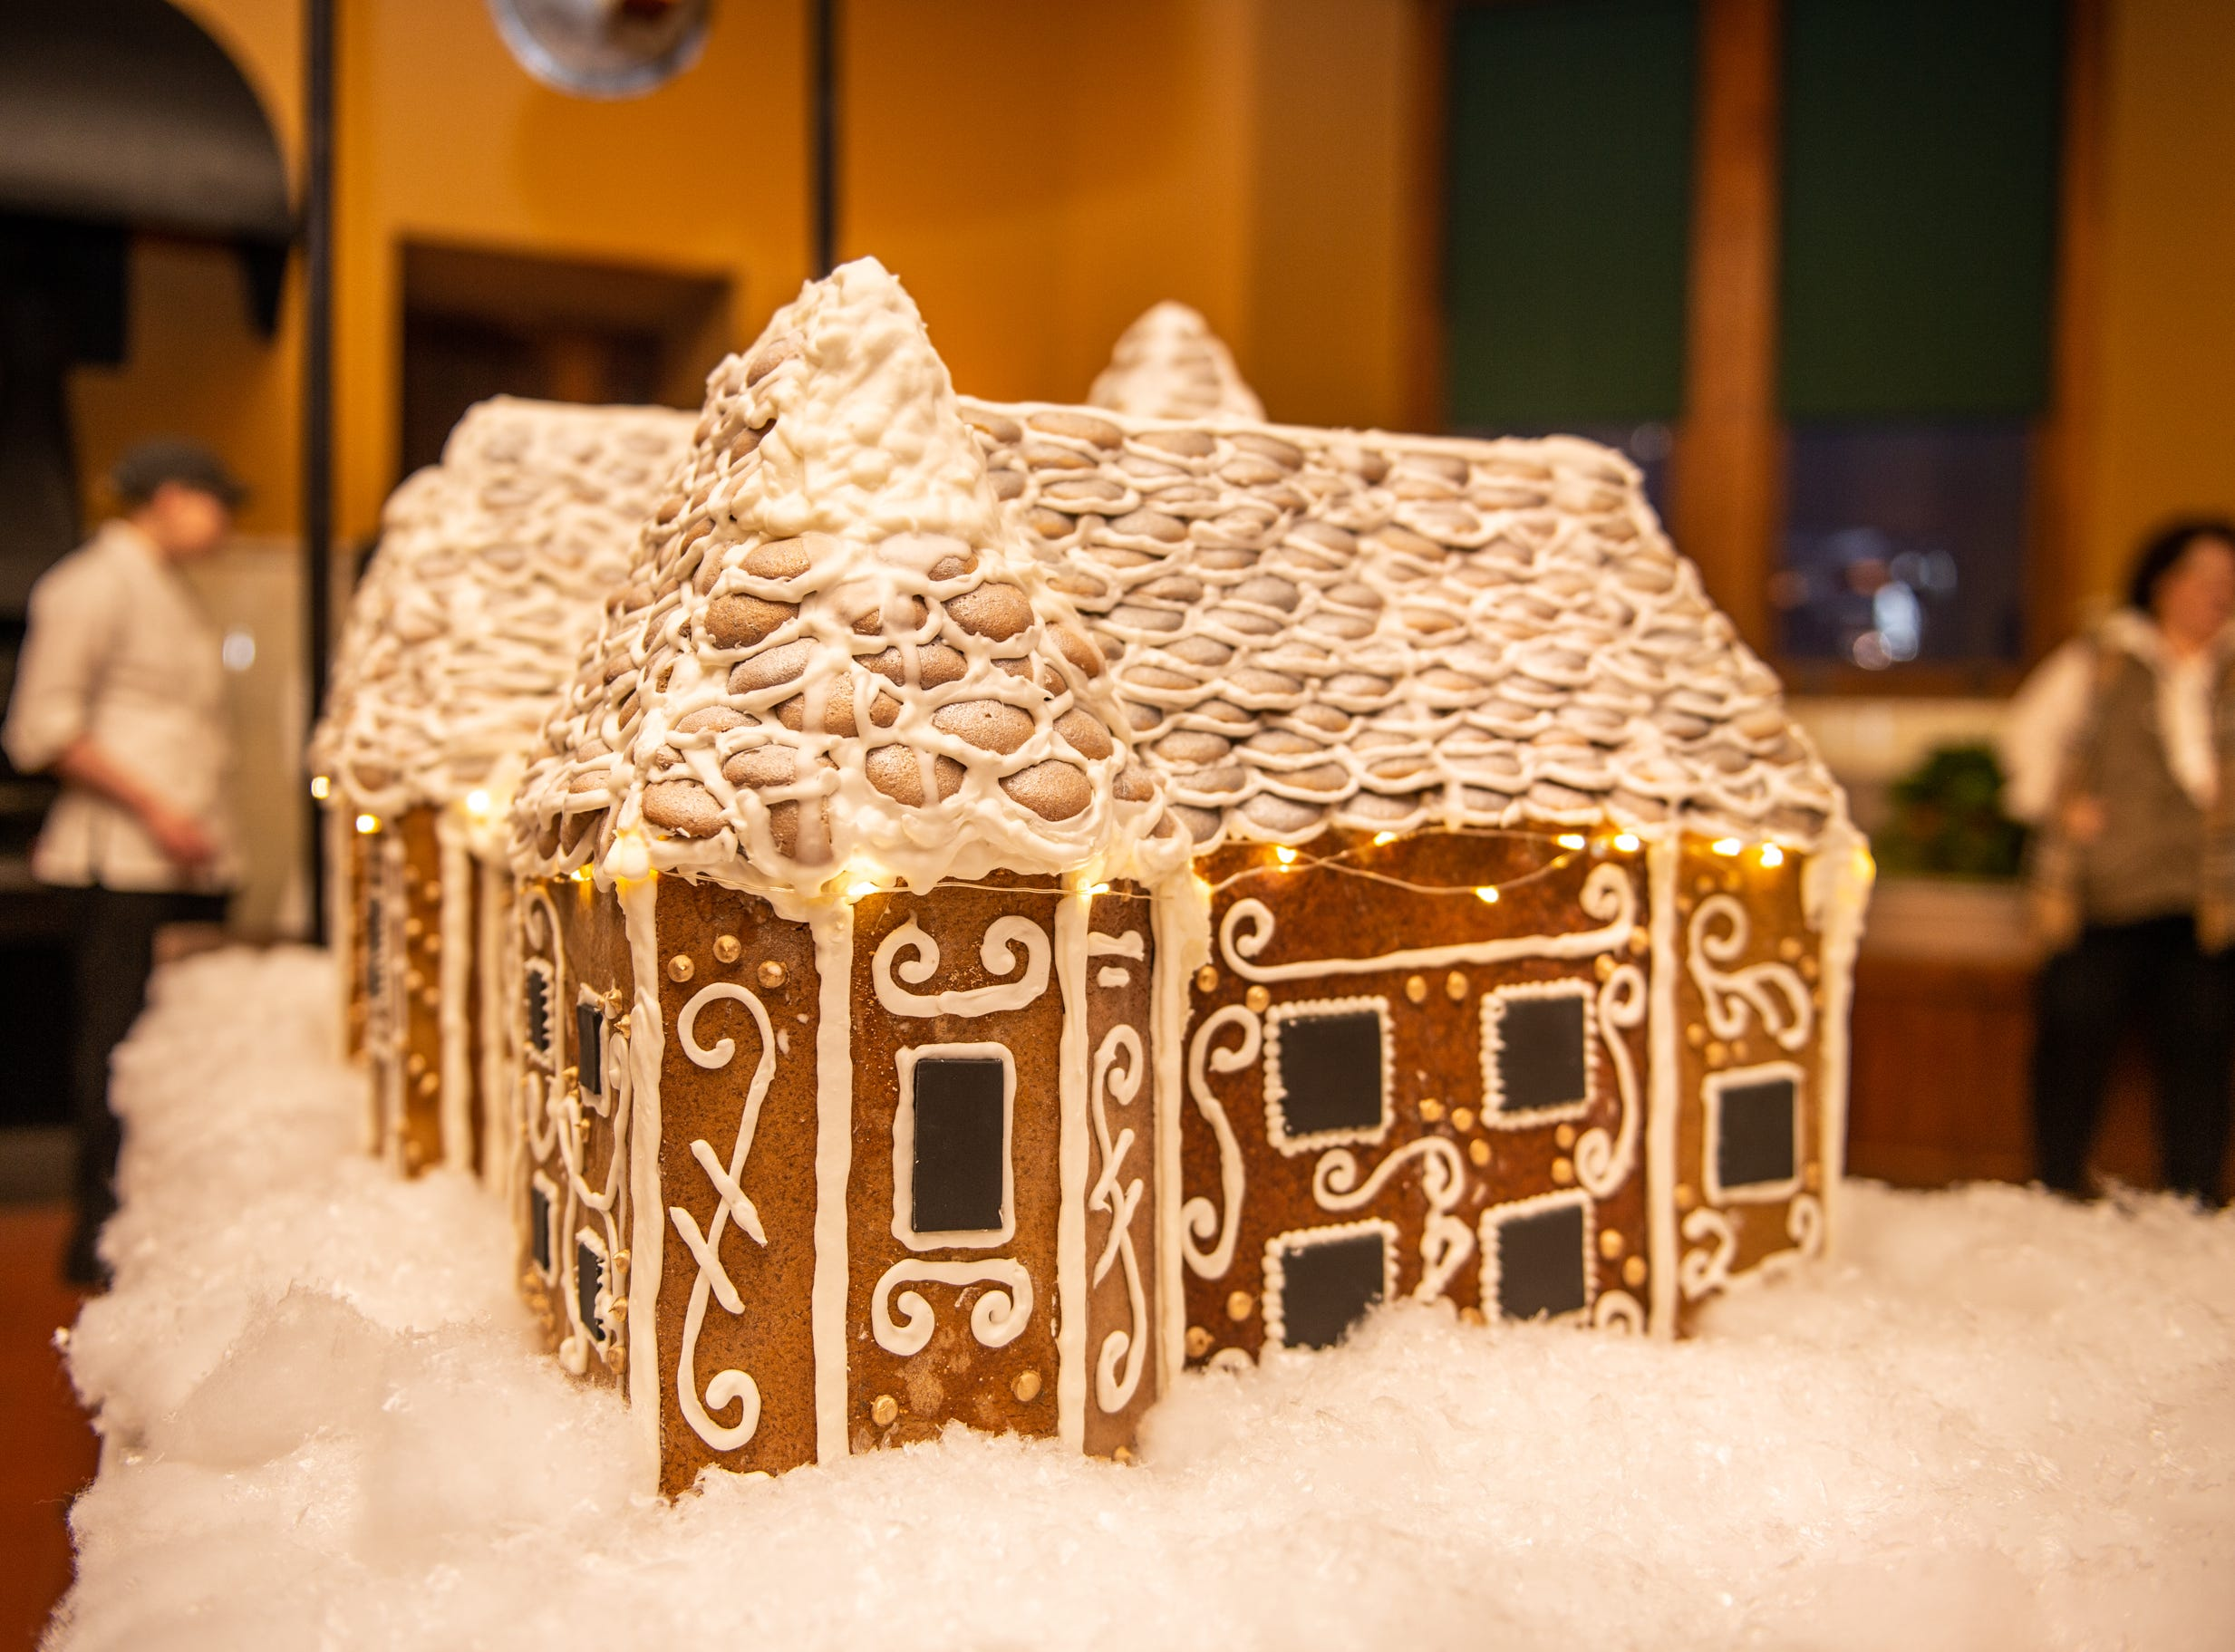 The completed gingerbread house sits in the Biltmore Estate kitchen the morning of Nov. 2, 2018. Just the roof takes a full week to construct.